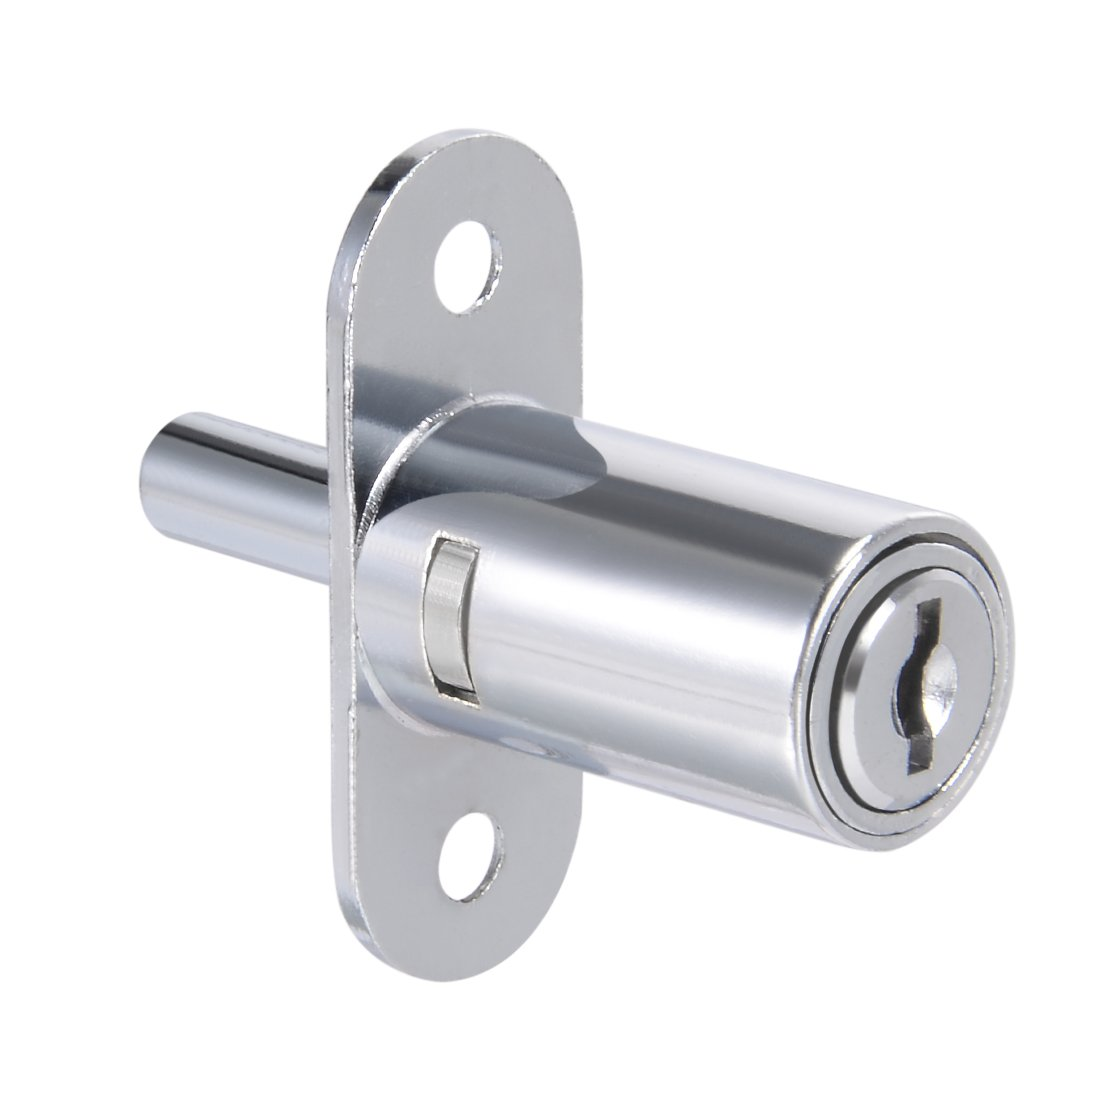 uxcell Plunger Lock, Keyed Different, 3/4-inch 19mm Cylinder Track Push